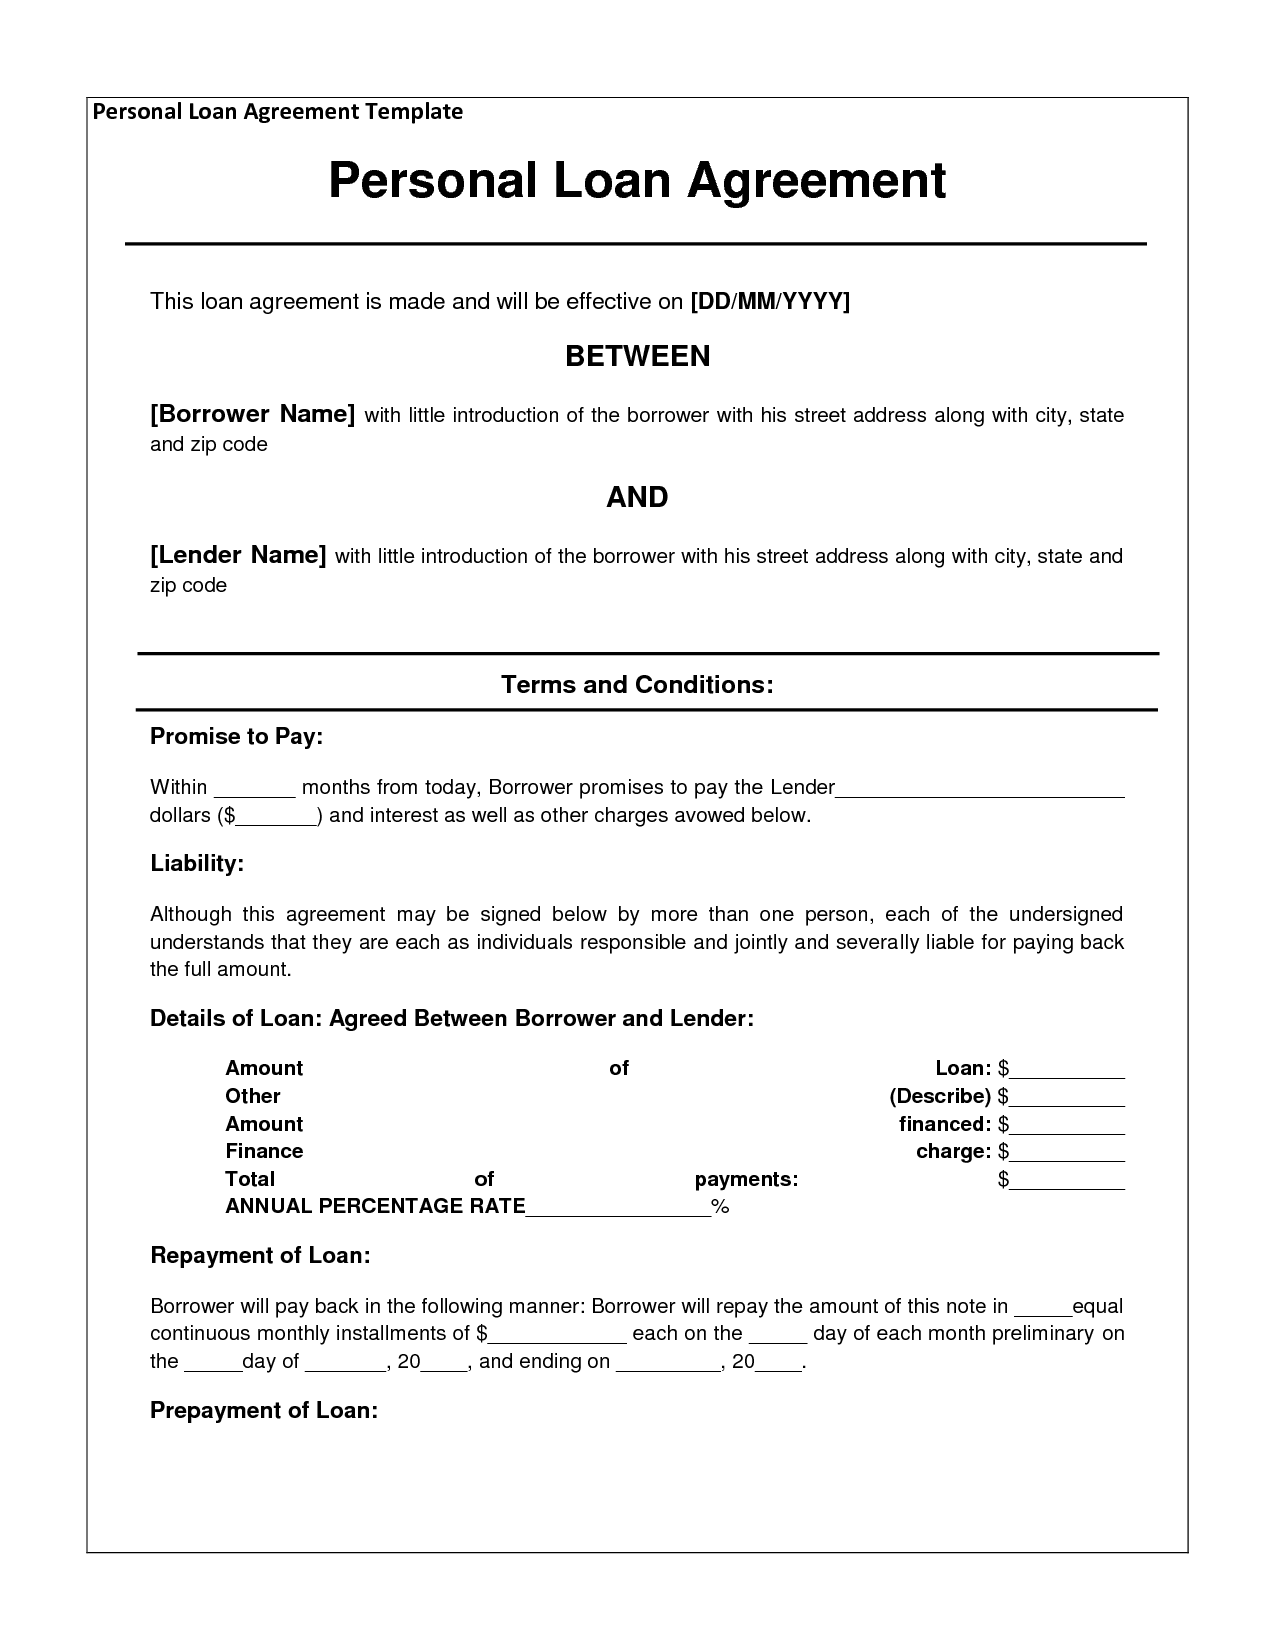 free personal loan agreement form template 1000 approved in 2